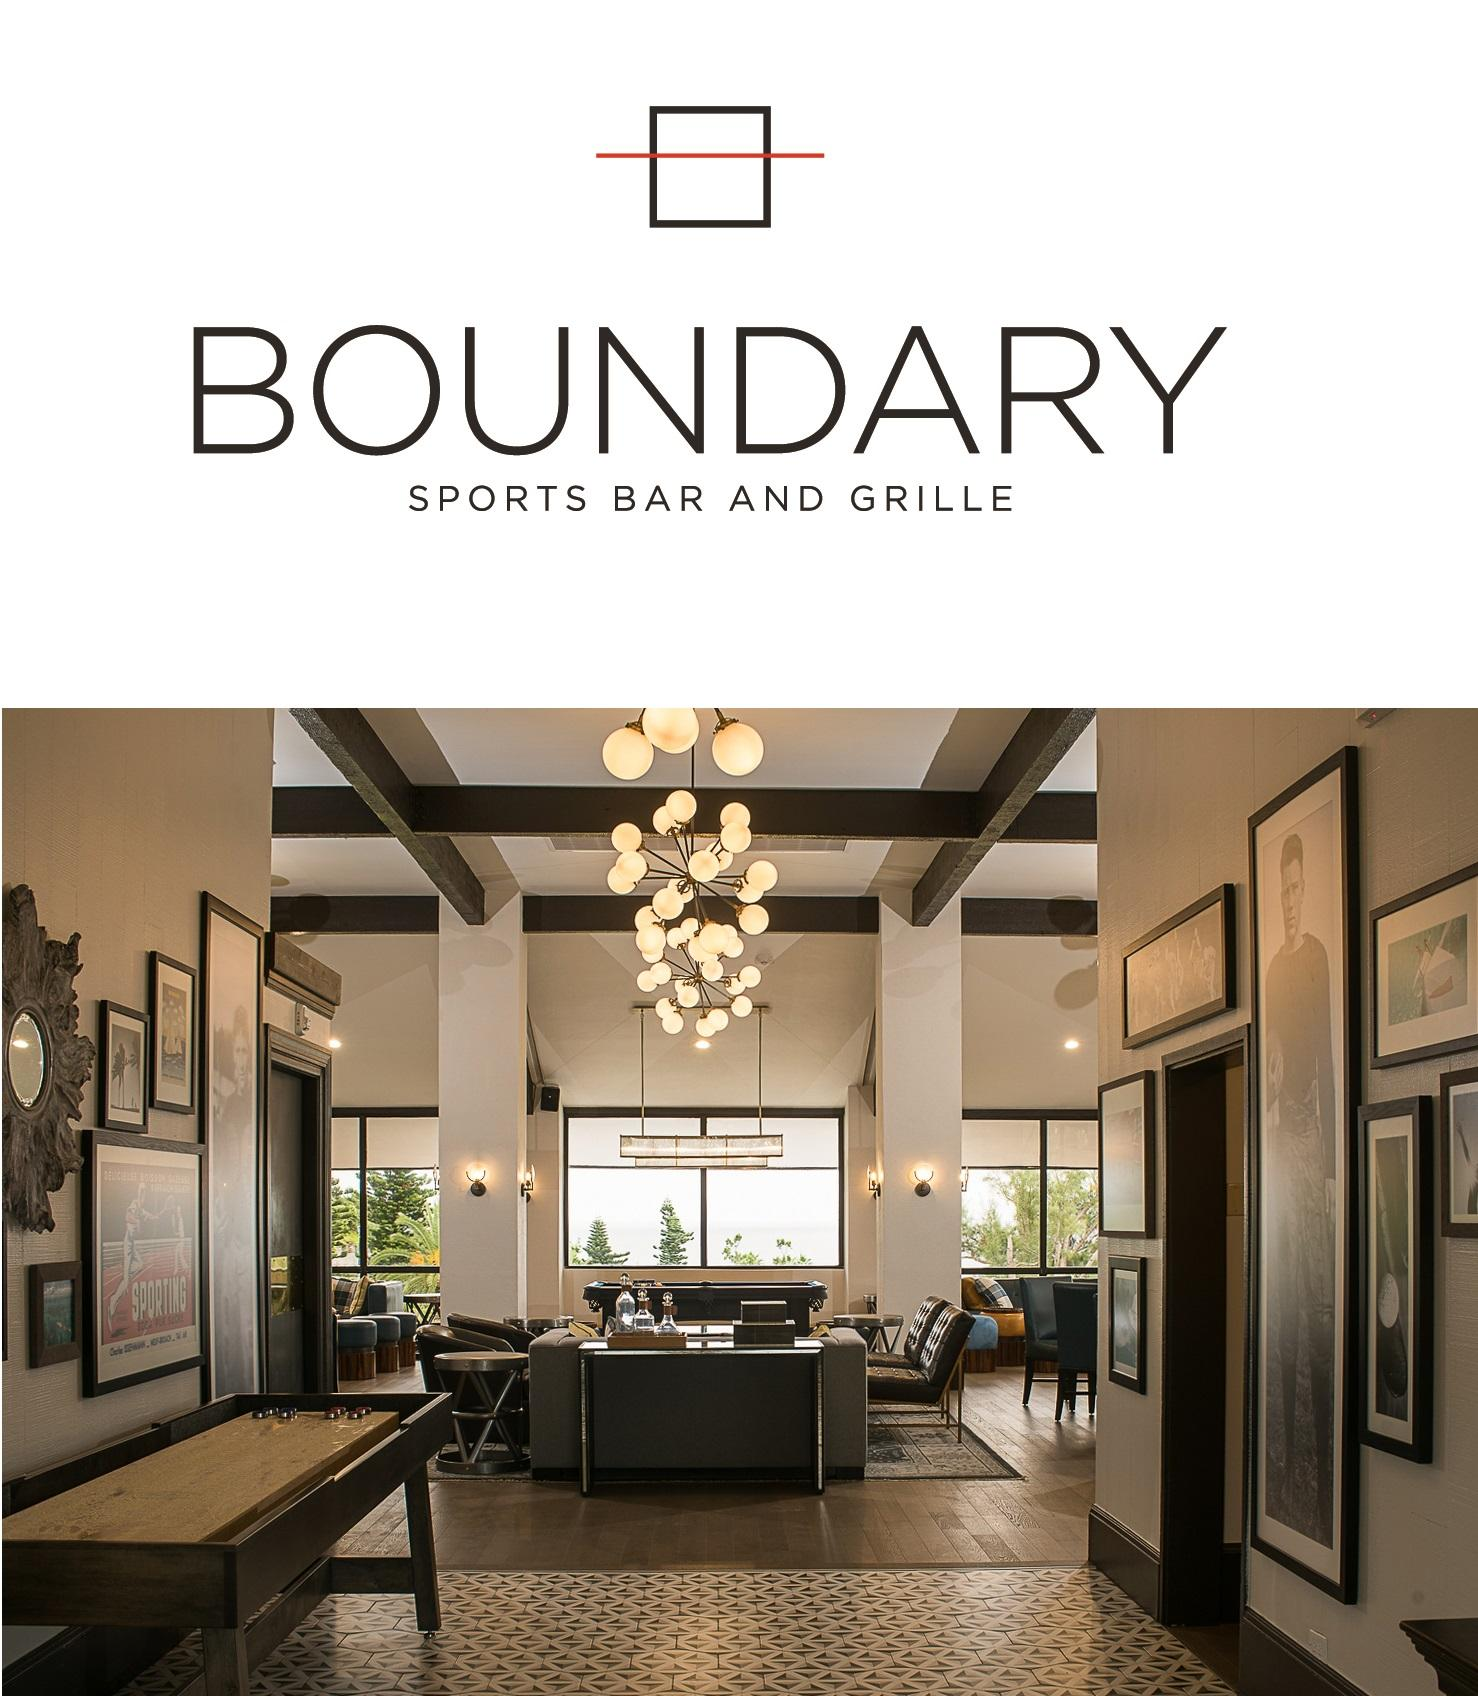 Boundary Sports Bar & Grille